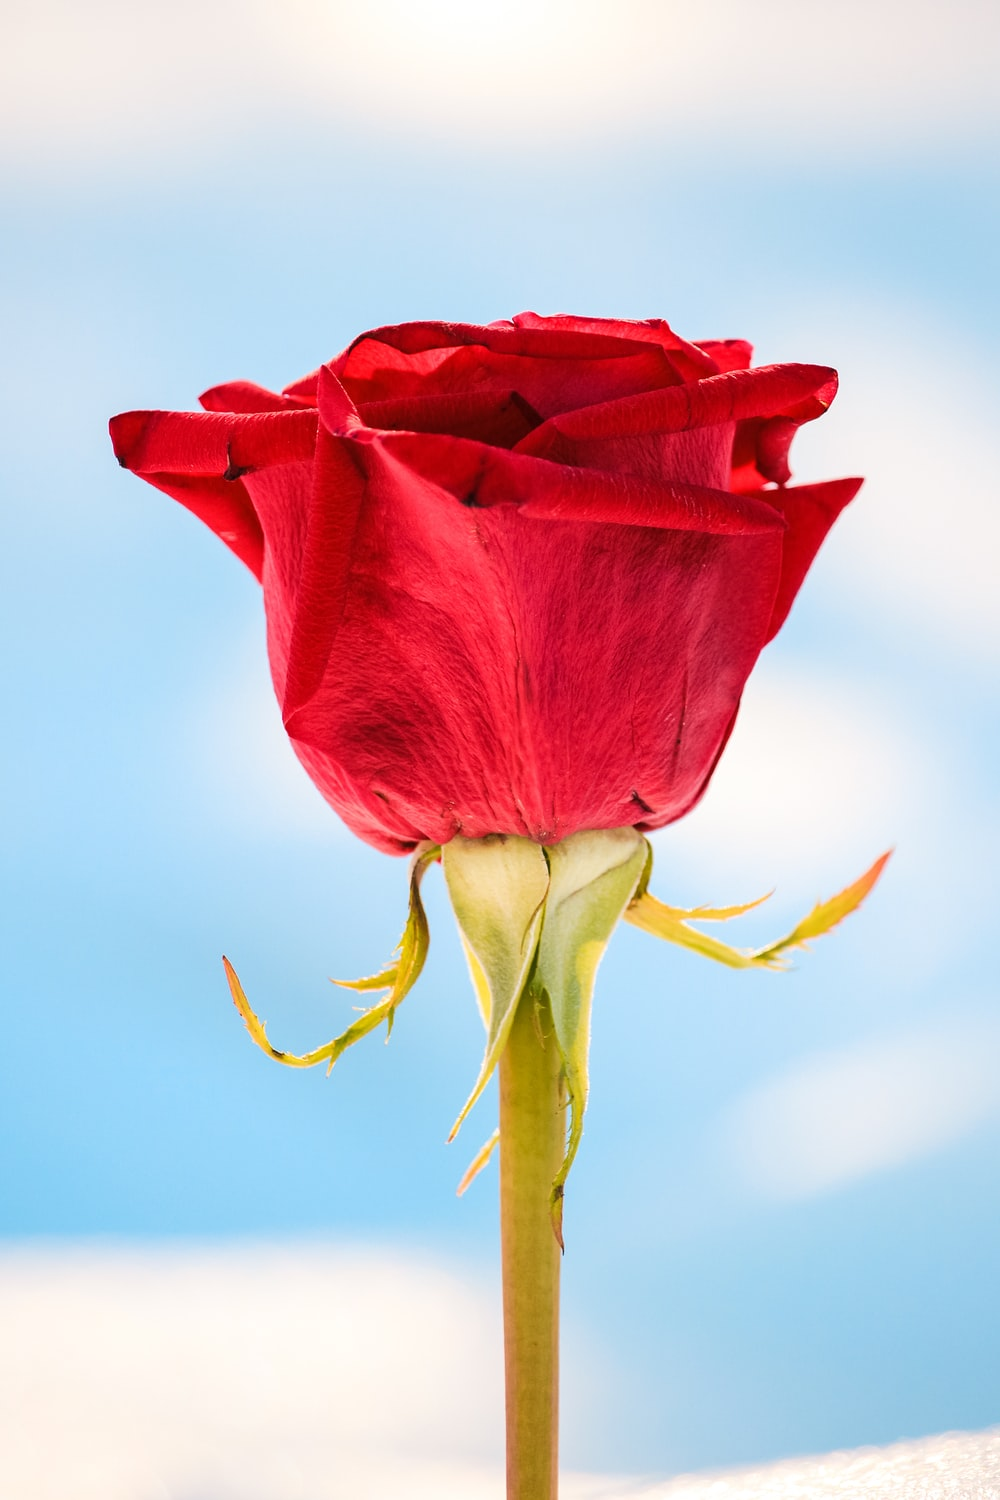 350 Love Rose Pictures Download Free Images Stock Photos On Unsplash